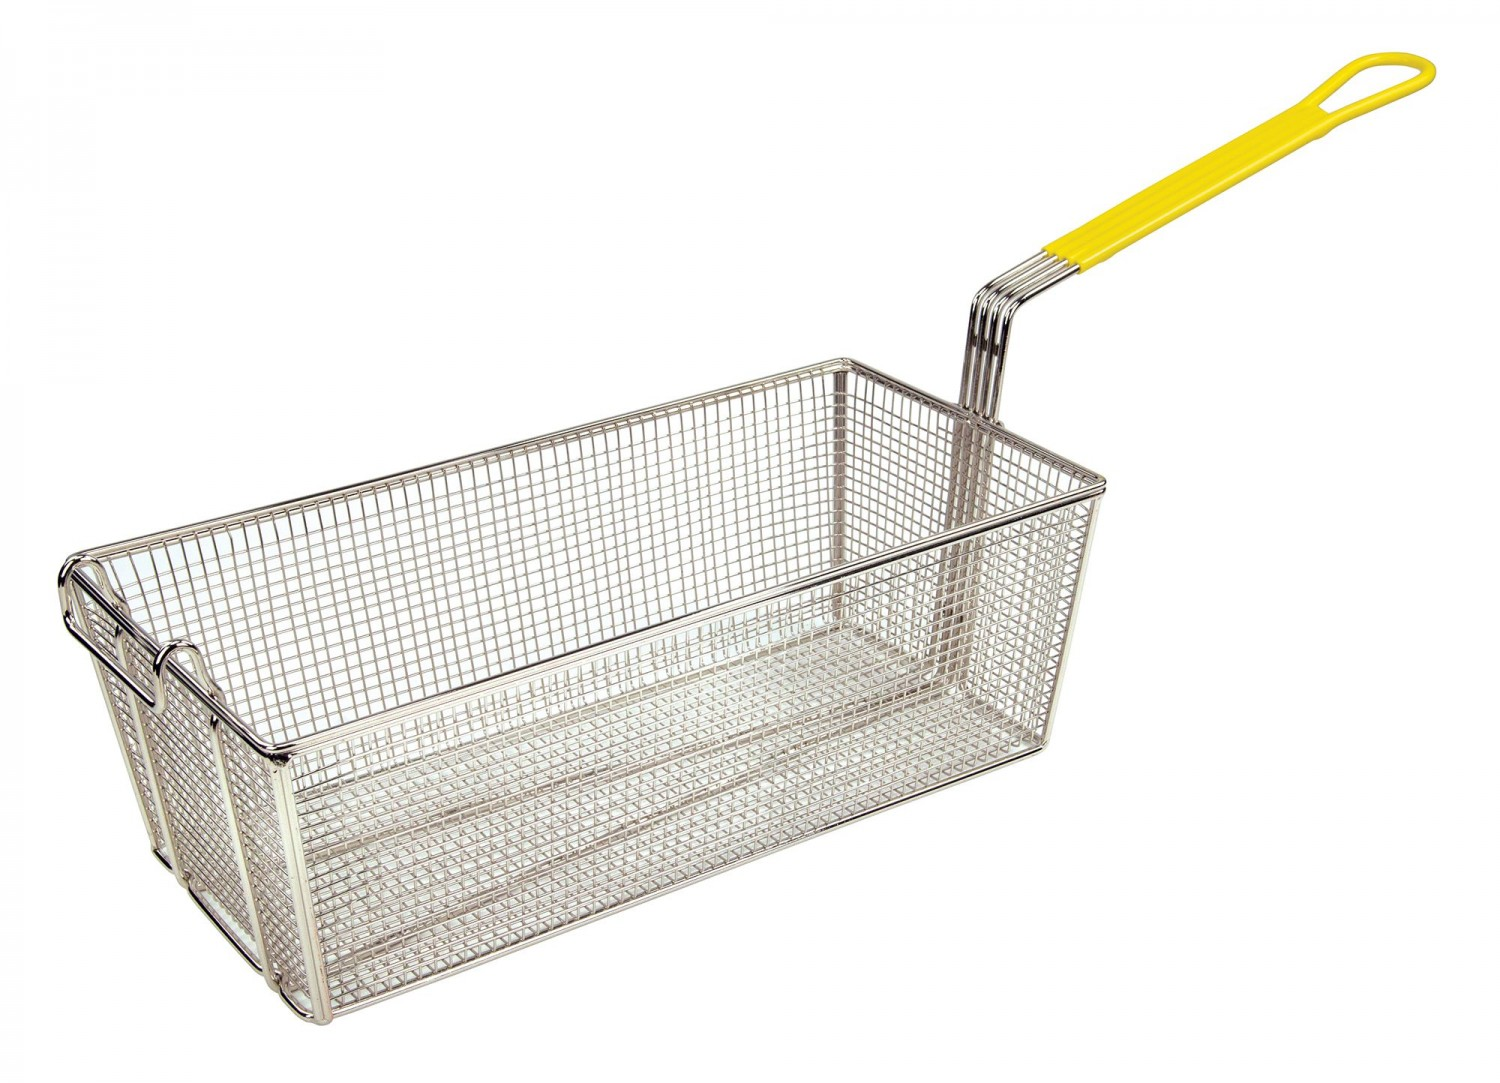 Winco FB-40 Stainless Steel Fry Basket with Yellow Handle